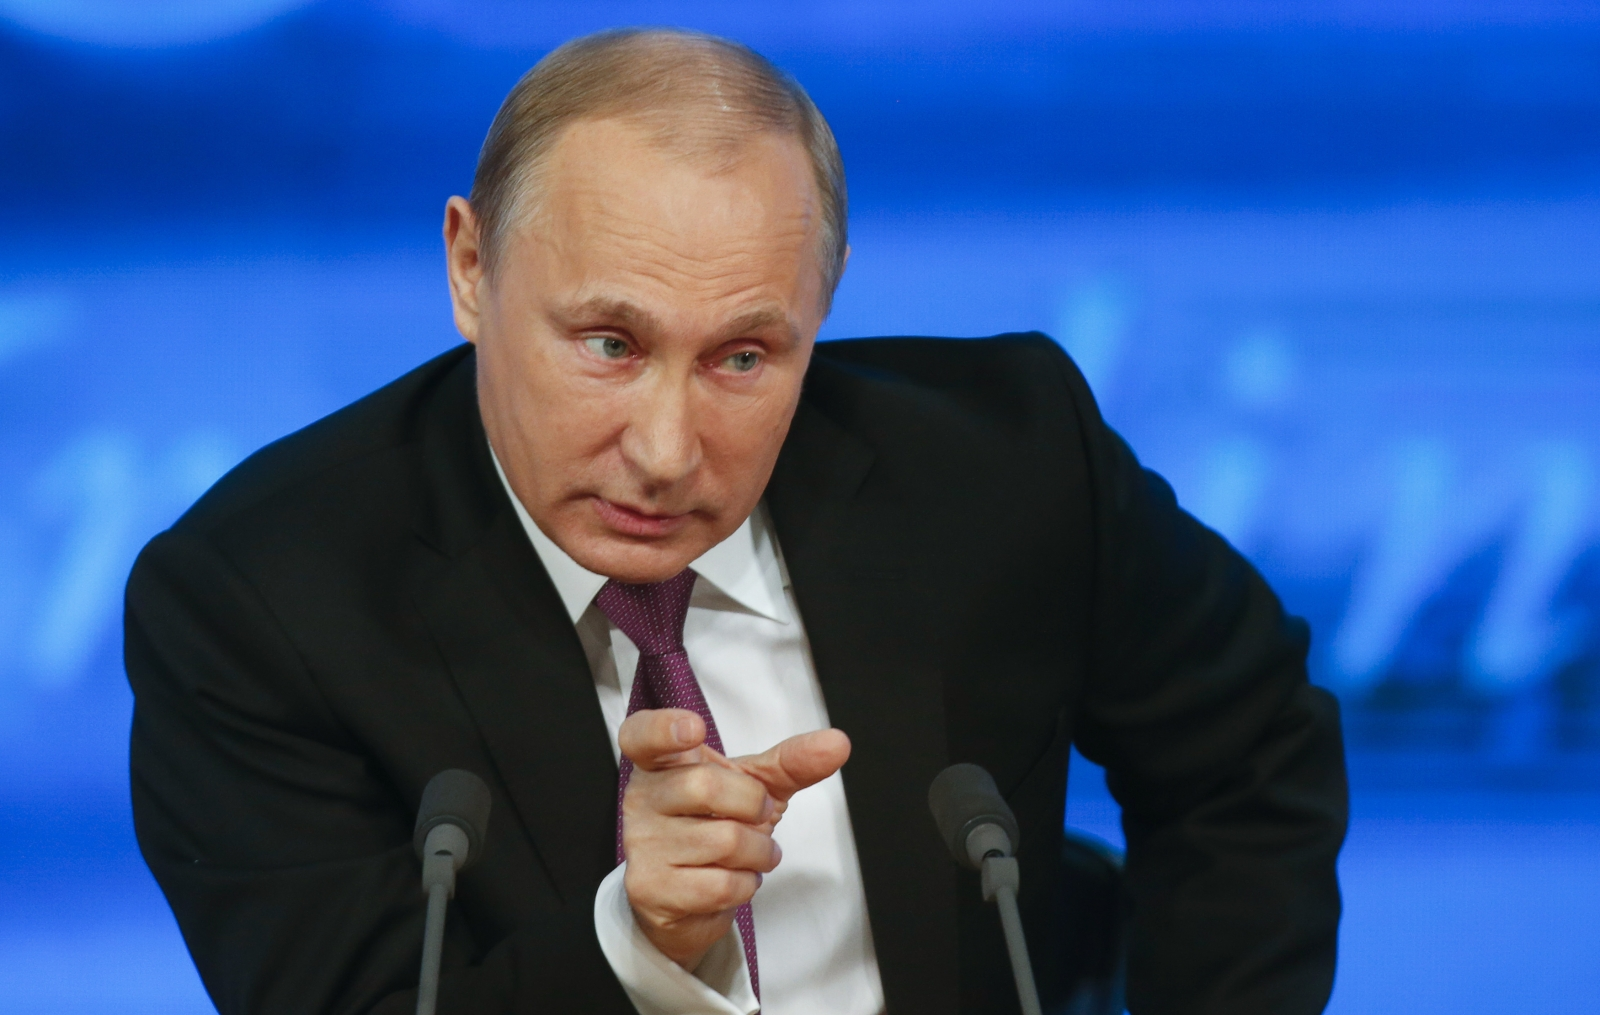 Russian President Vladimir Putin speaks during his annual end-of-year news conference in Moscow, December 18, 2014. Putin said on Thursday the government had to take additional measures to forge economic stability.